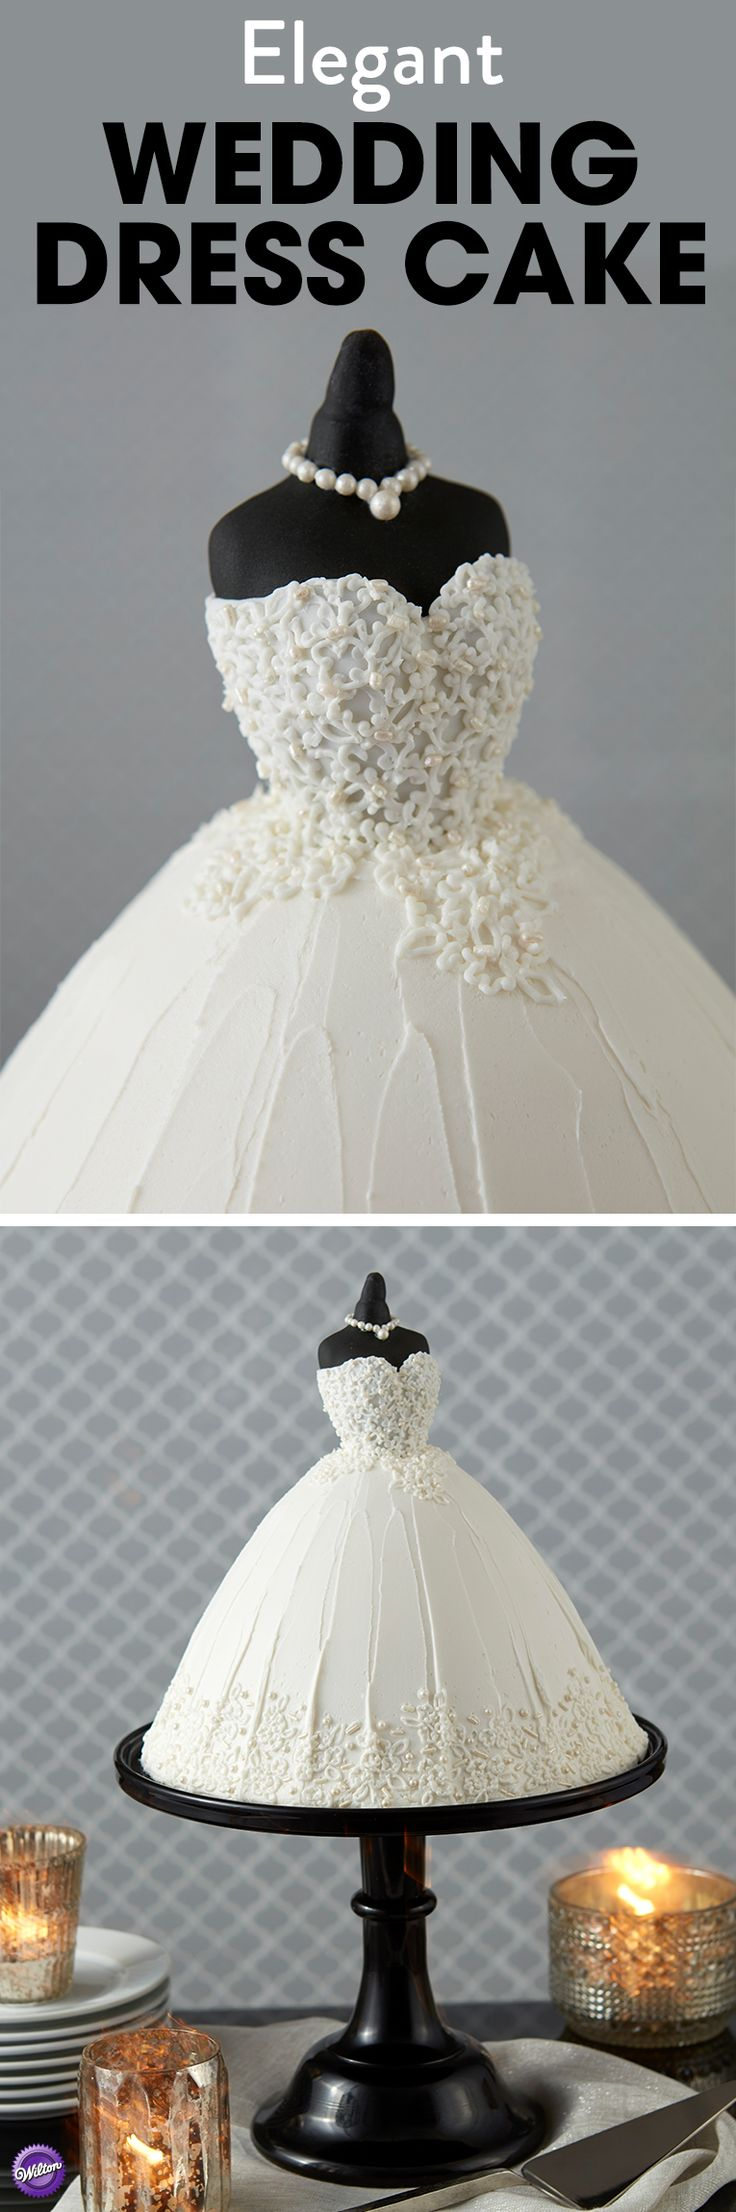 Cupcake Cake That Looks Like A Wedding Dress